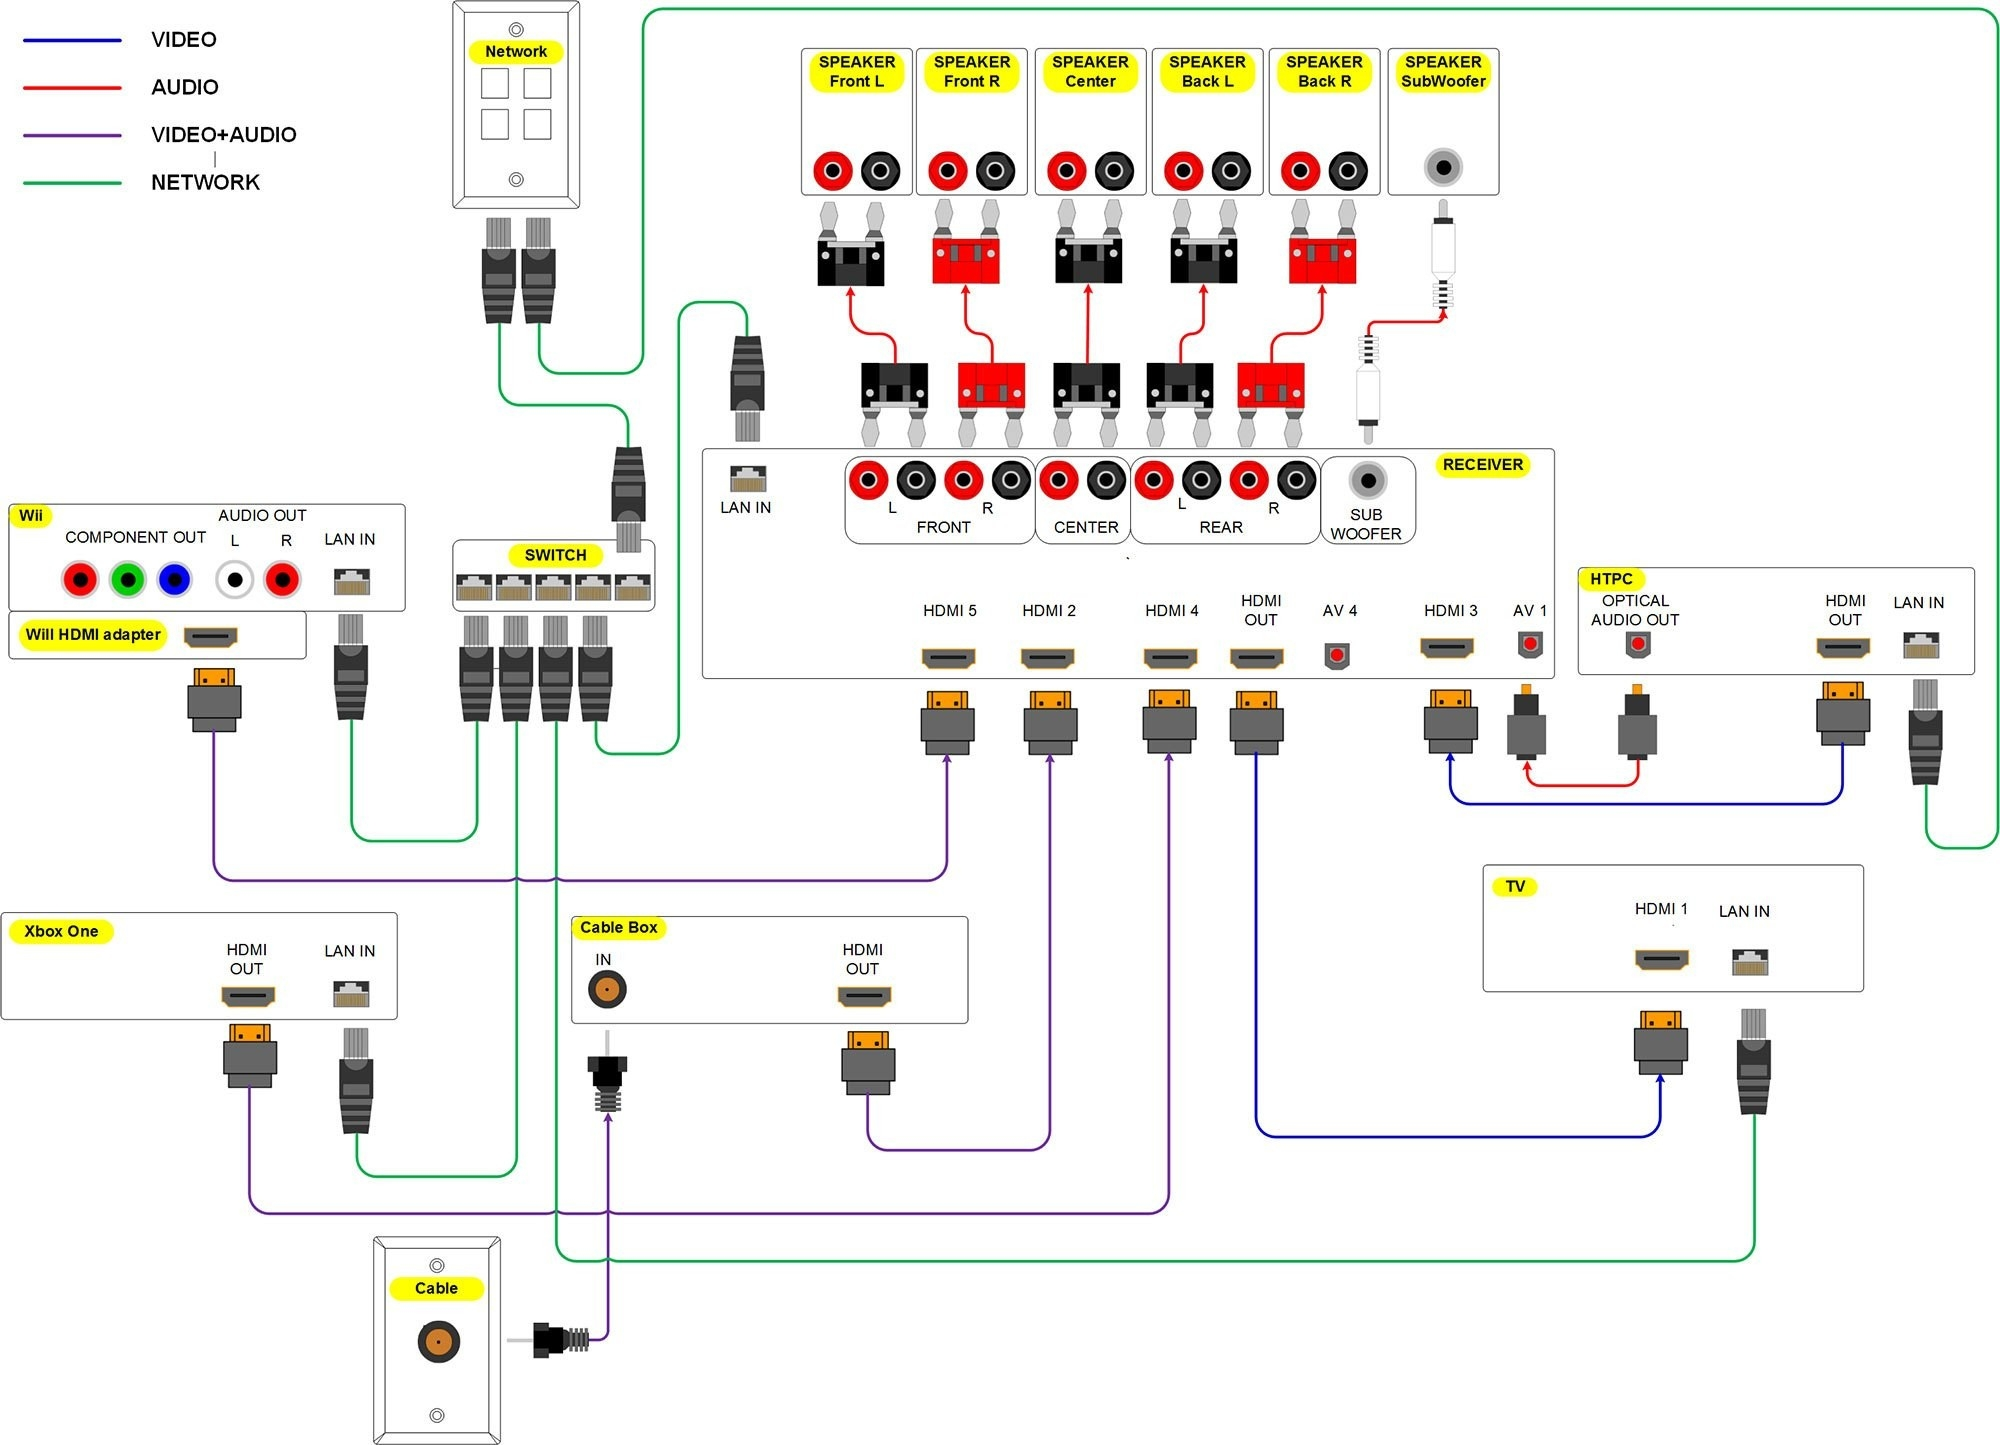 Home theater Systems Speaker Wiring Diagram - Wiring Diagram for Home sound System New Inspirationa Wiring Diagram Home theater System 3k